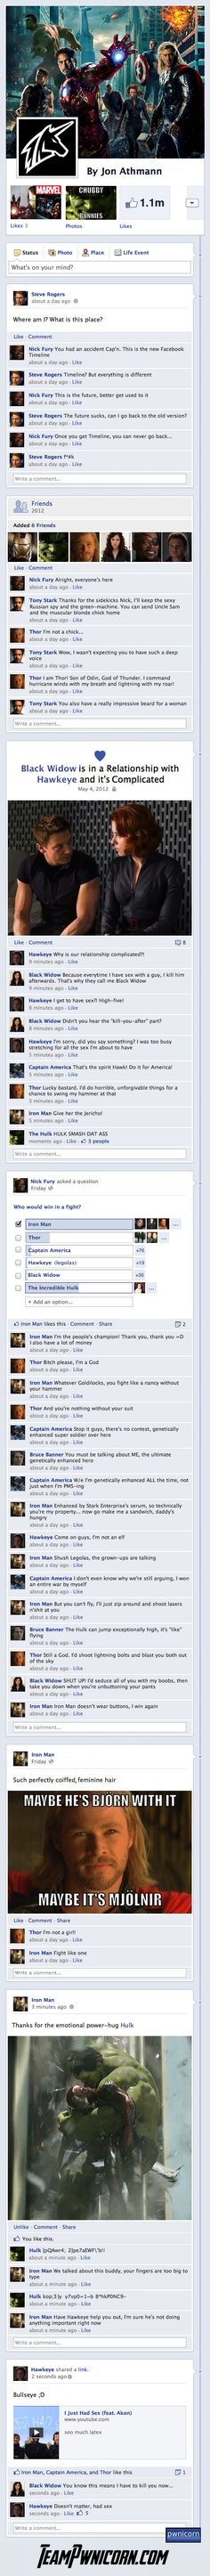 What If... The Avengers Assembled On Facebook?